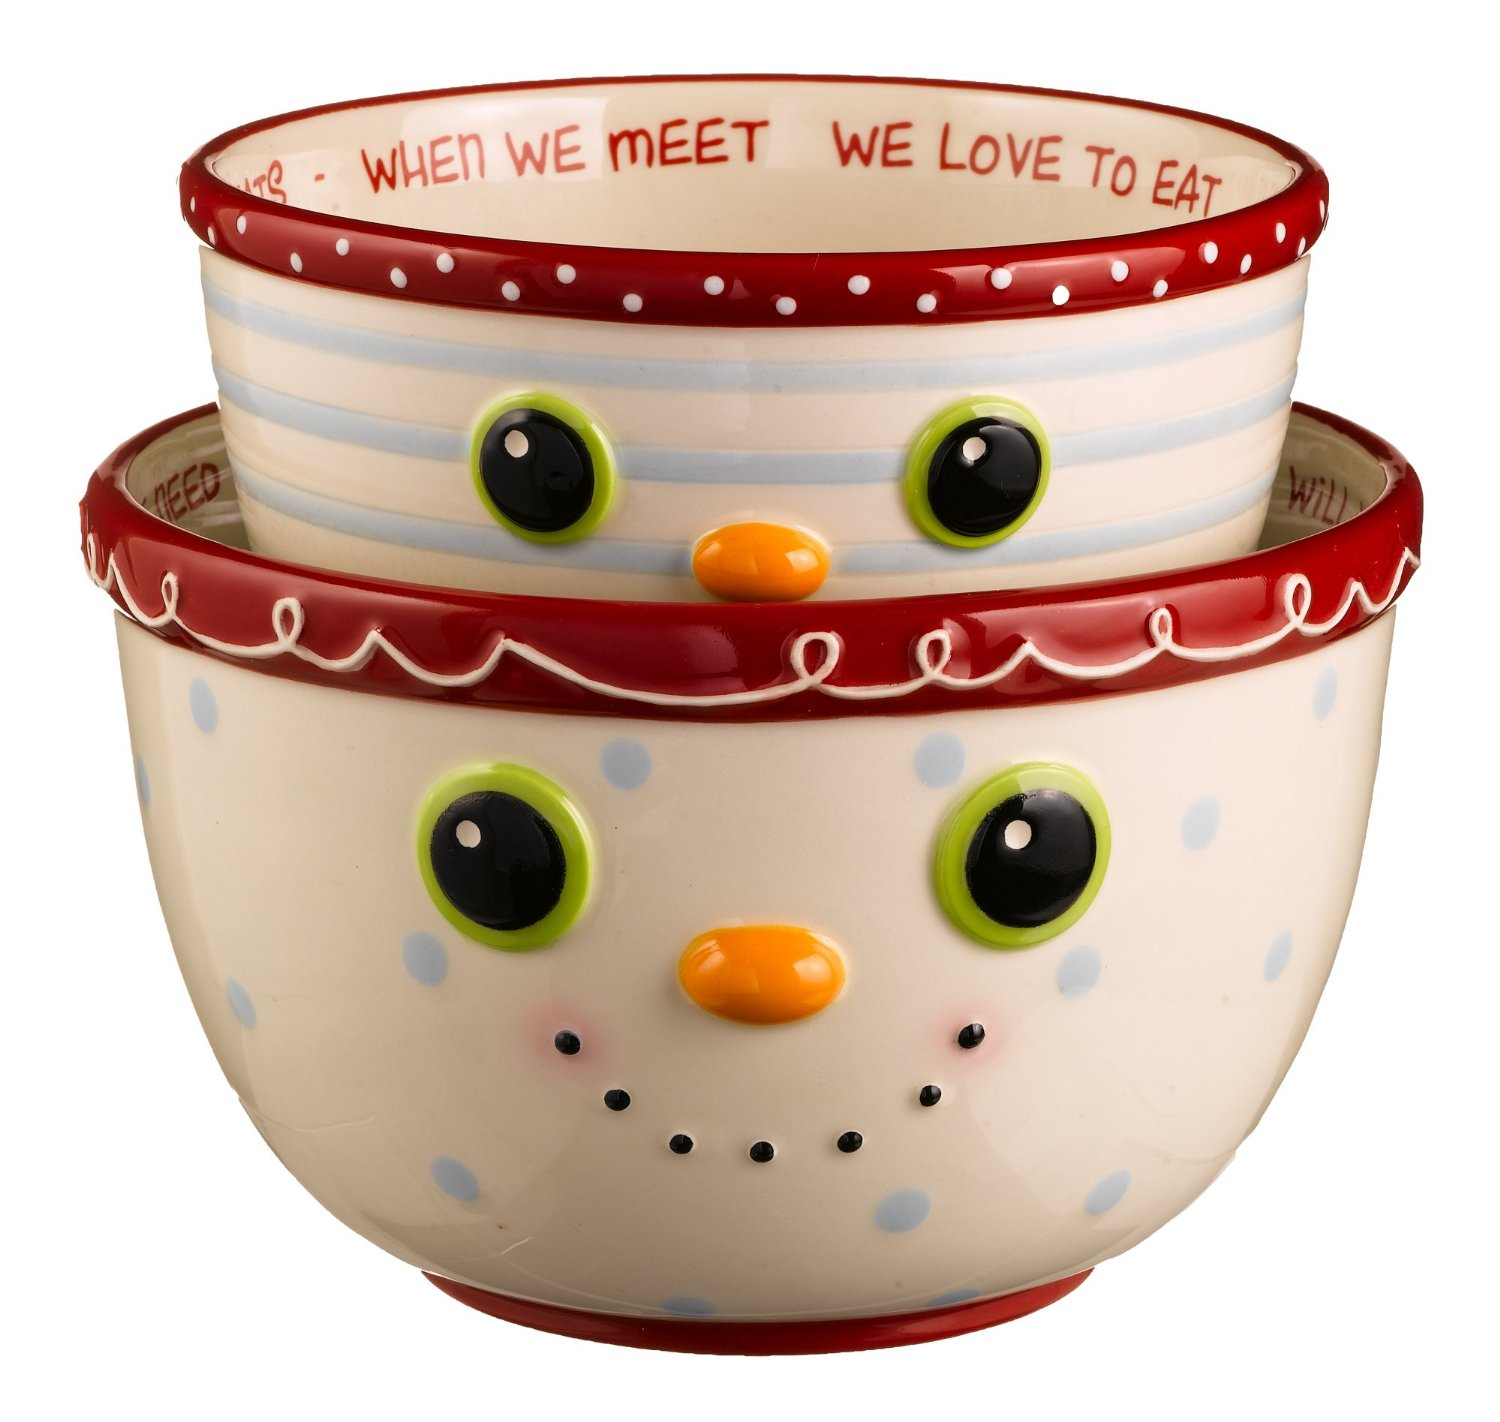 Grasslands Road Holiday Baker Sweet Tidings Nested Bowl Set of 2